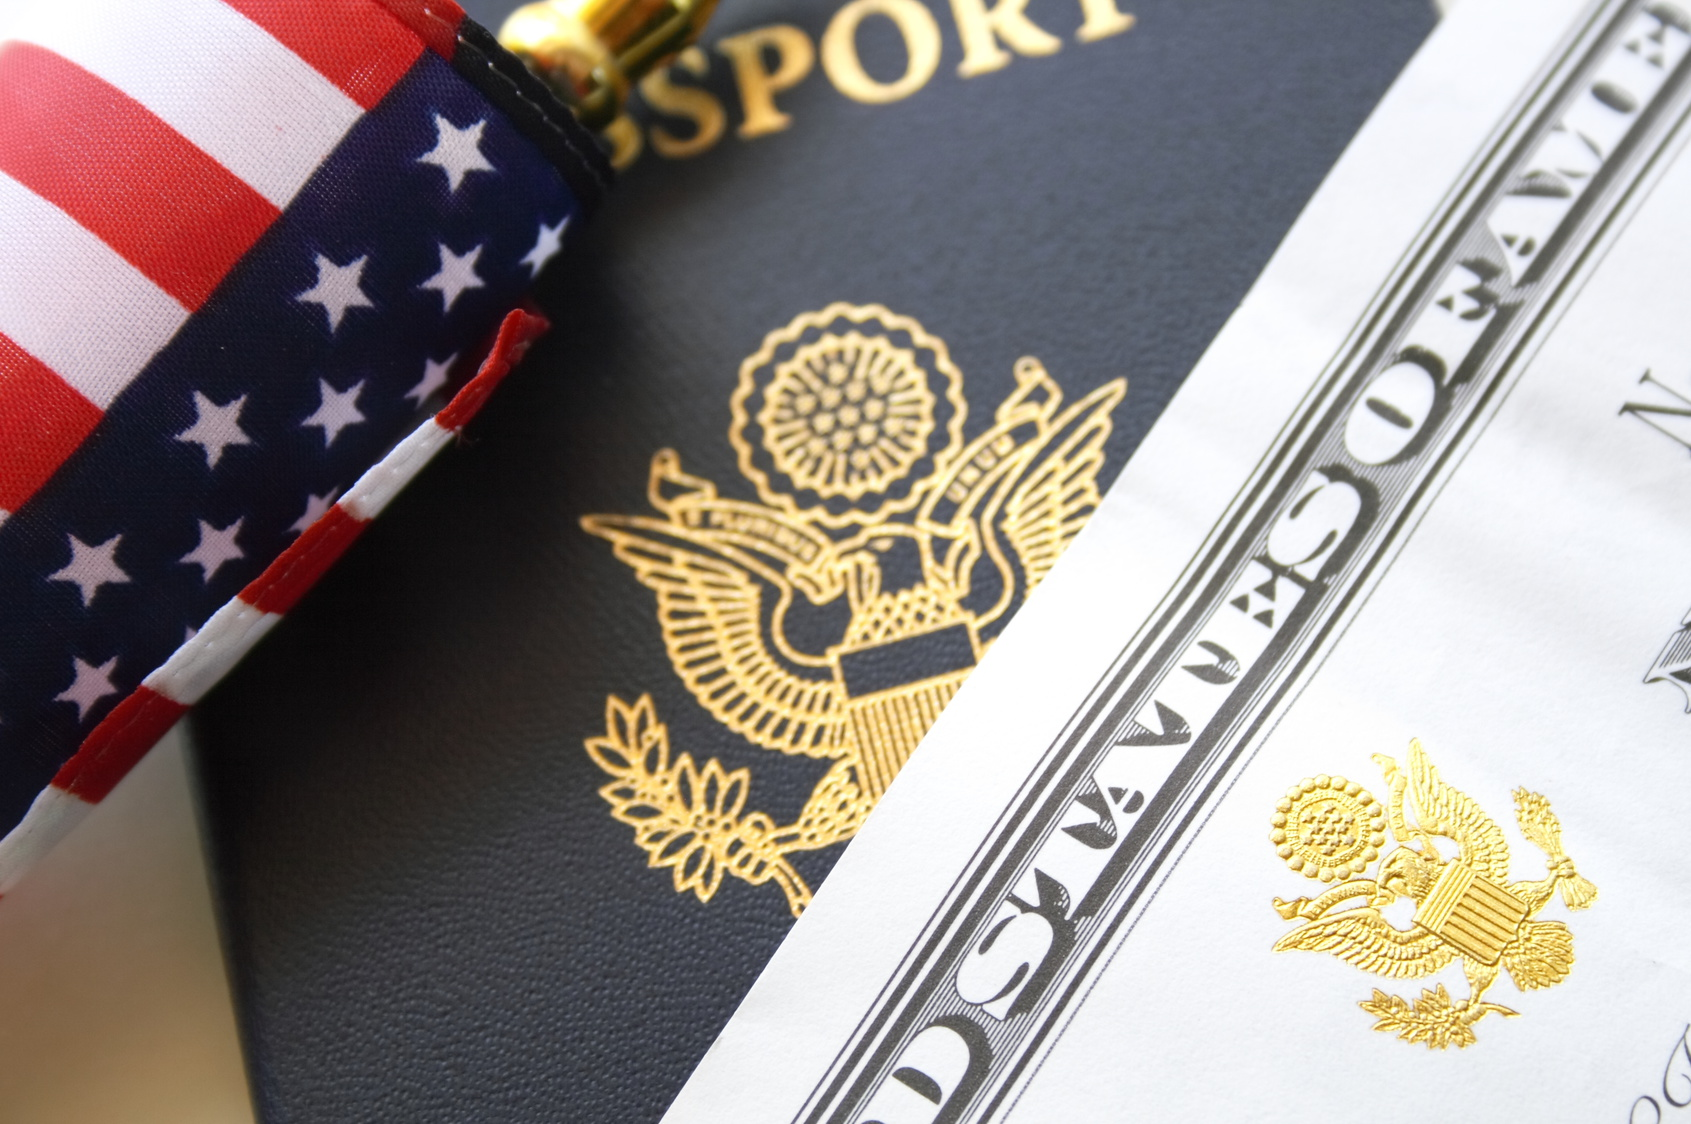 Personal thoughts on immigration essay